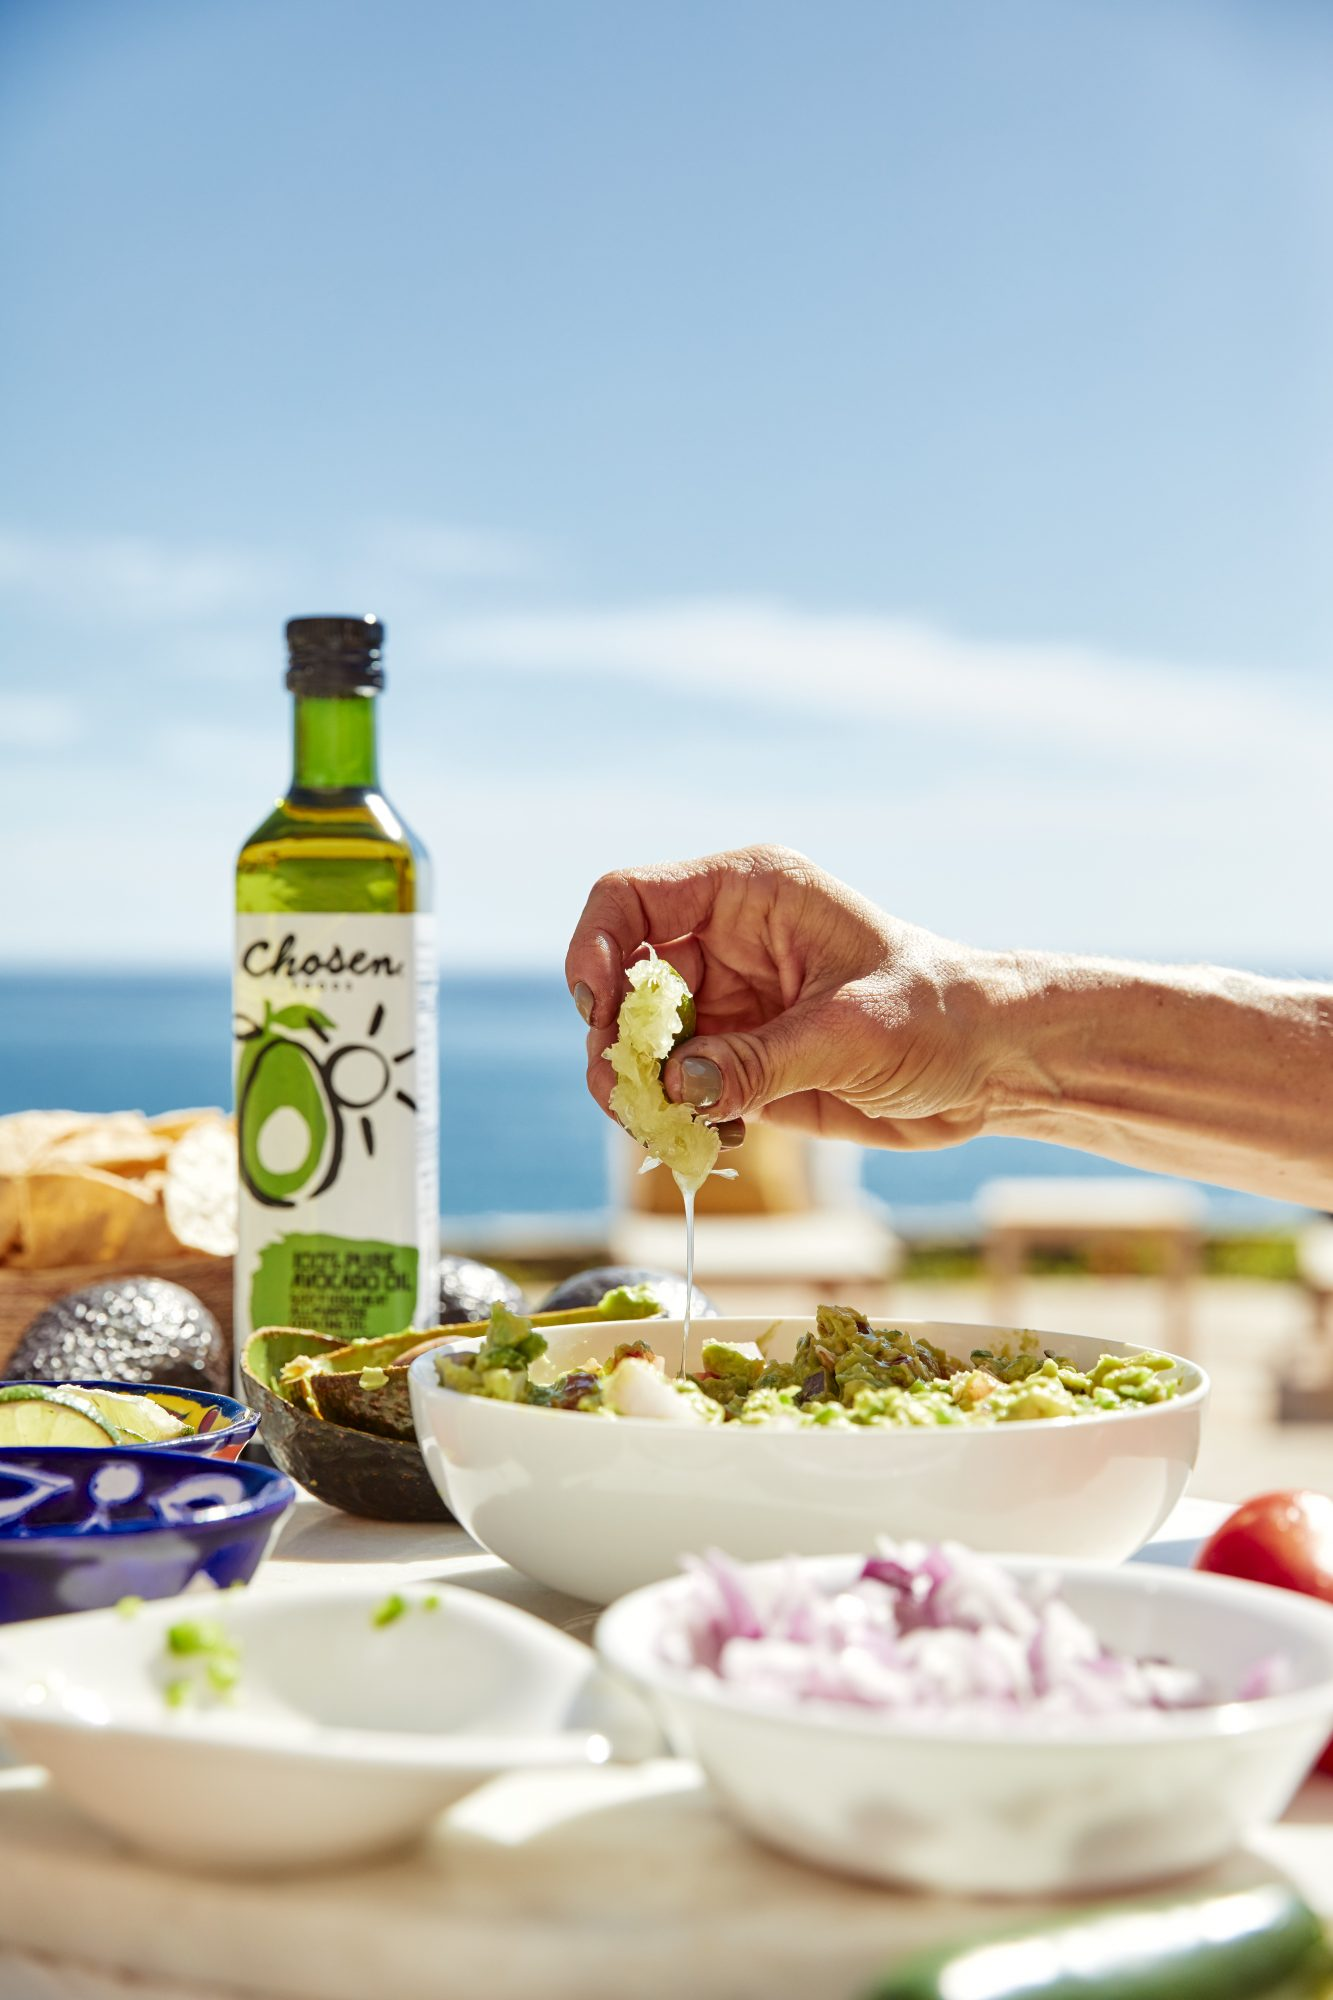 avocado oil and guacamole outdoors